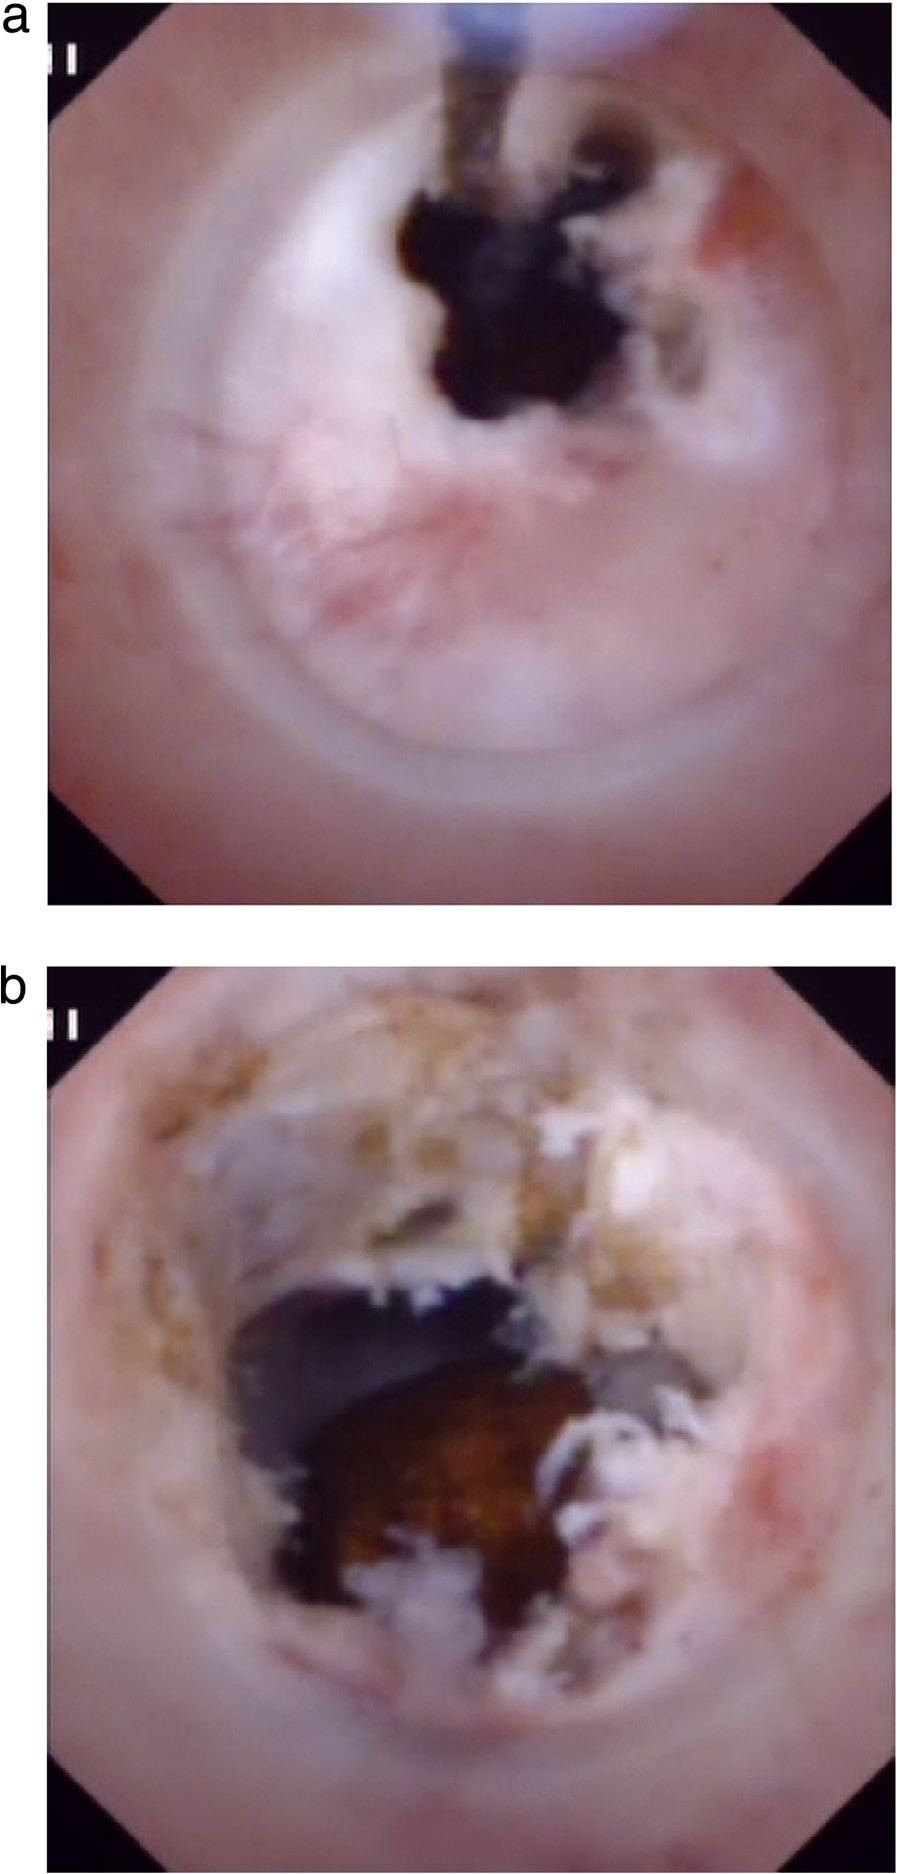 Choledochoscopic high-frequency needle-knife electrotomy was performed for anastomotic strictures: a) The strictured opening is cut gradually under direct vision with no sign of bleeding. b) The fibrous tissue of the anastomosis has been removed and a stone can be seen in intrahepatic bile duct